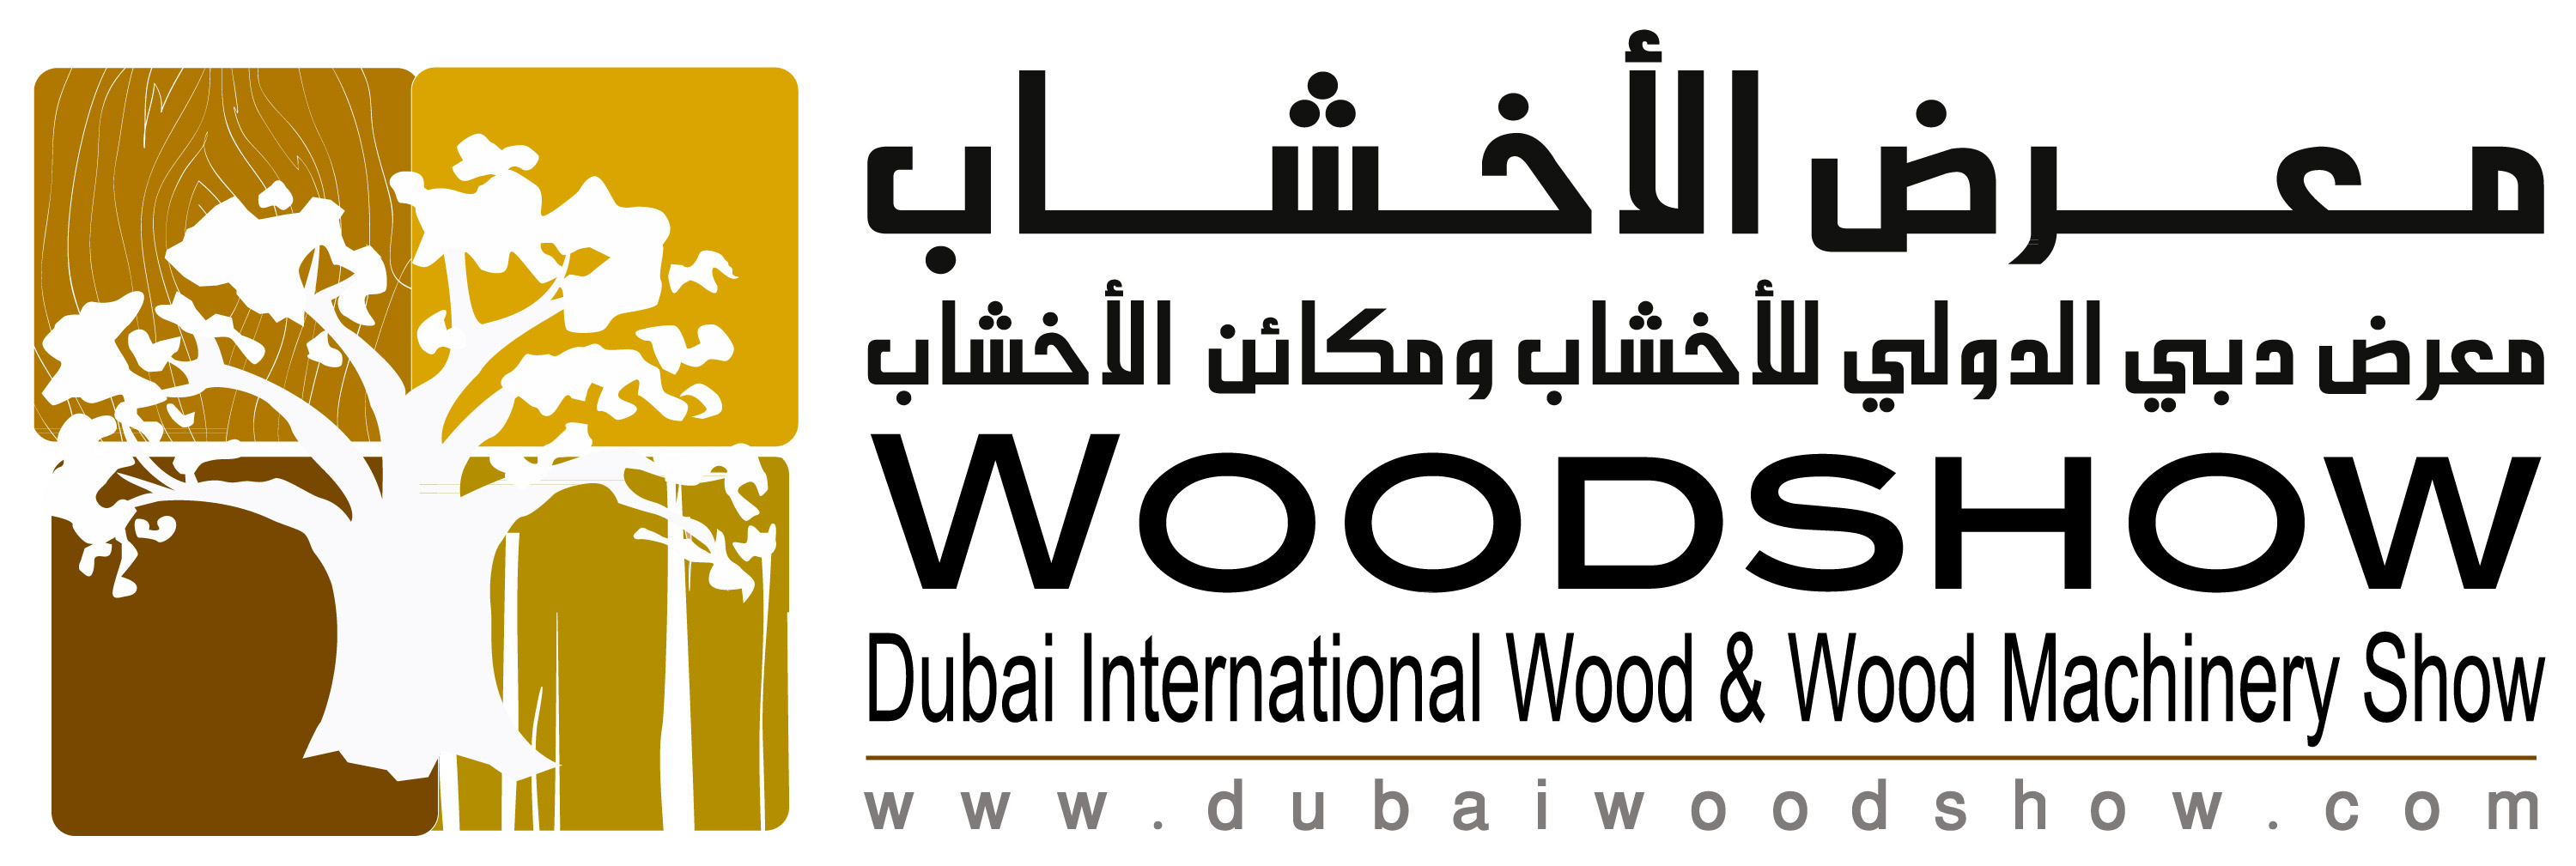 Dubai Wood Show 2017